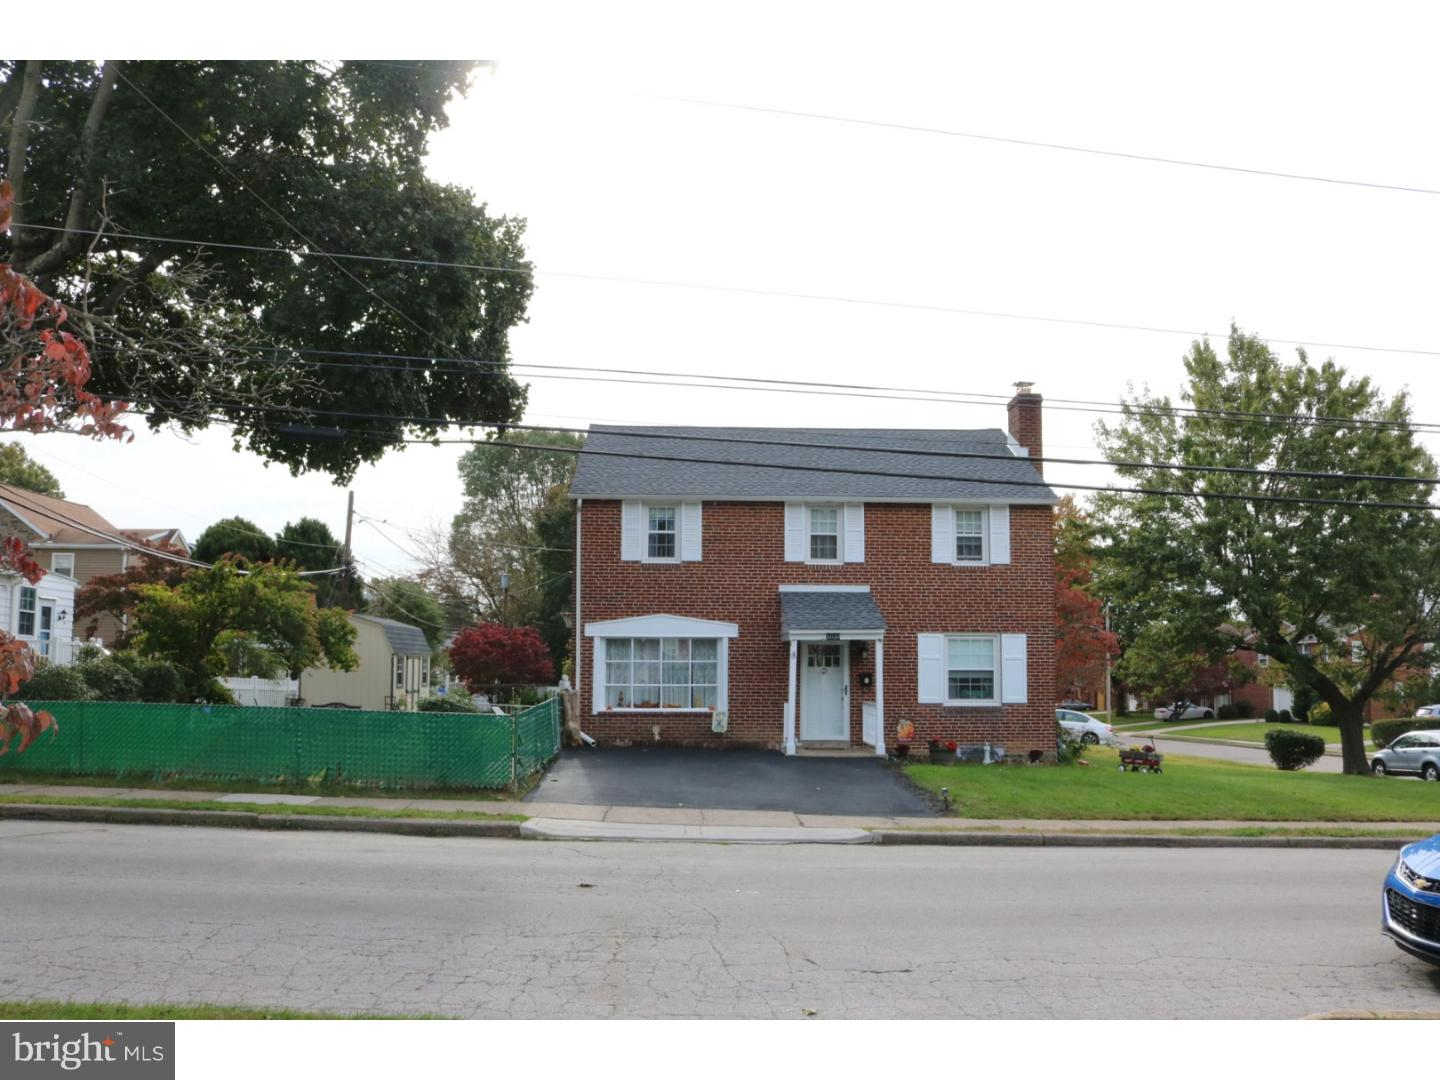 5030 Bond Avenue Drexel Hill, PA 19026